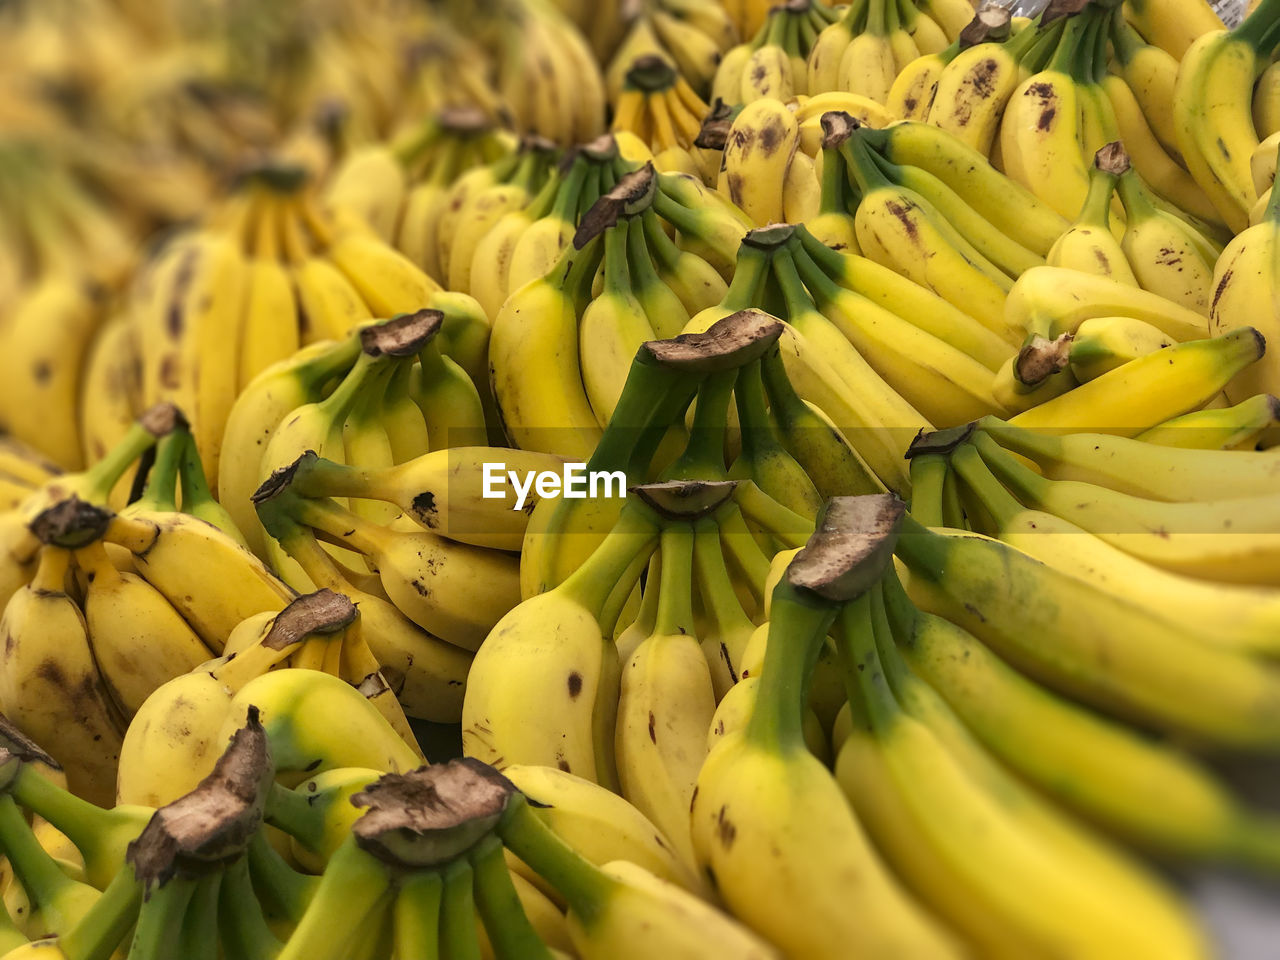 banana, healthy eating, food and drink, food, yellow, fruit, market, freshness, large group of objects, for sale, wellbeing, retail, abundance, market stall, no people, bunch, close-up, small business, green color, retail display, ripe, sale, consumerism